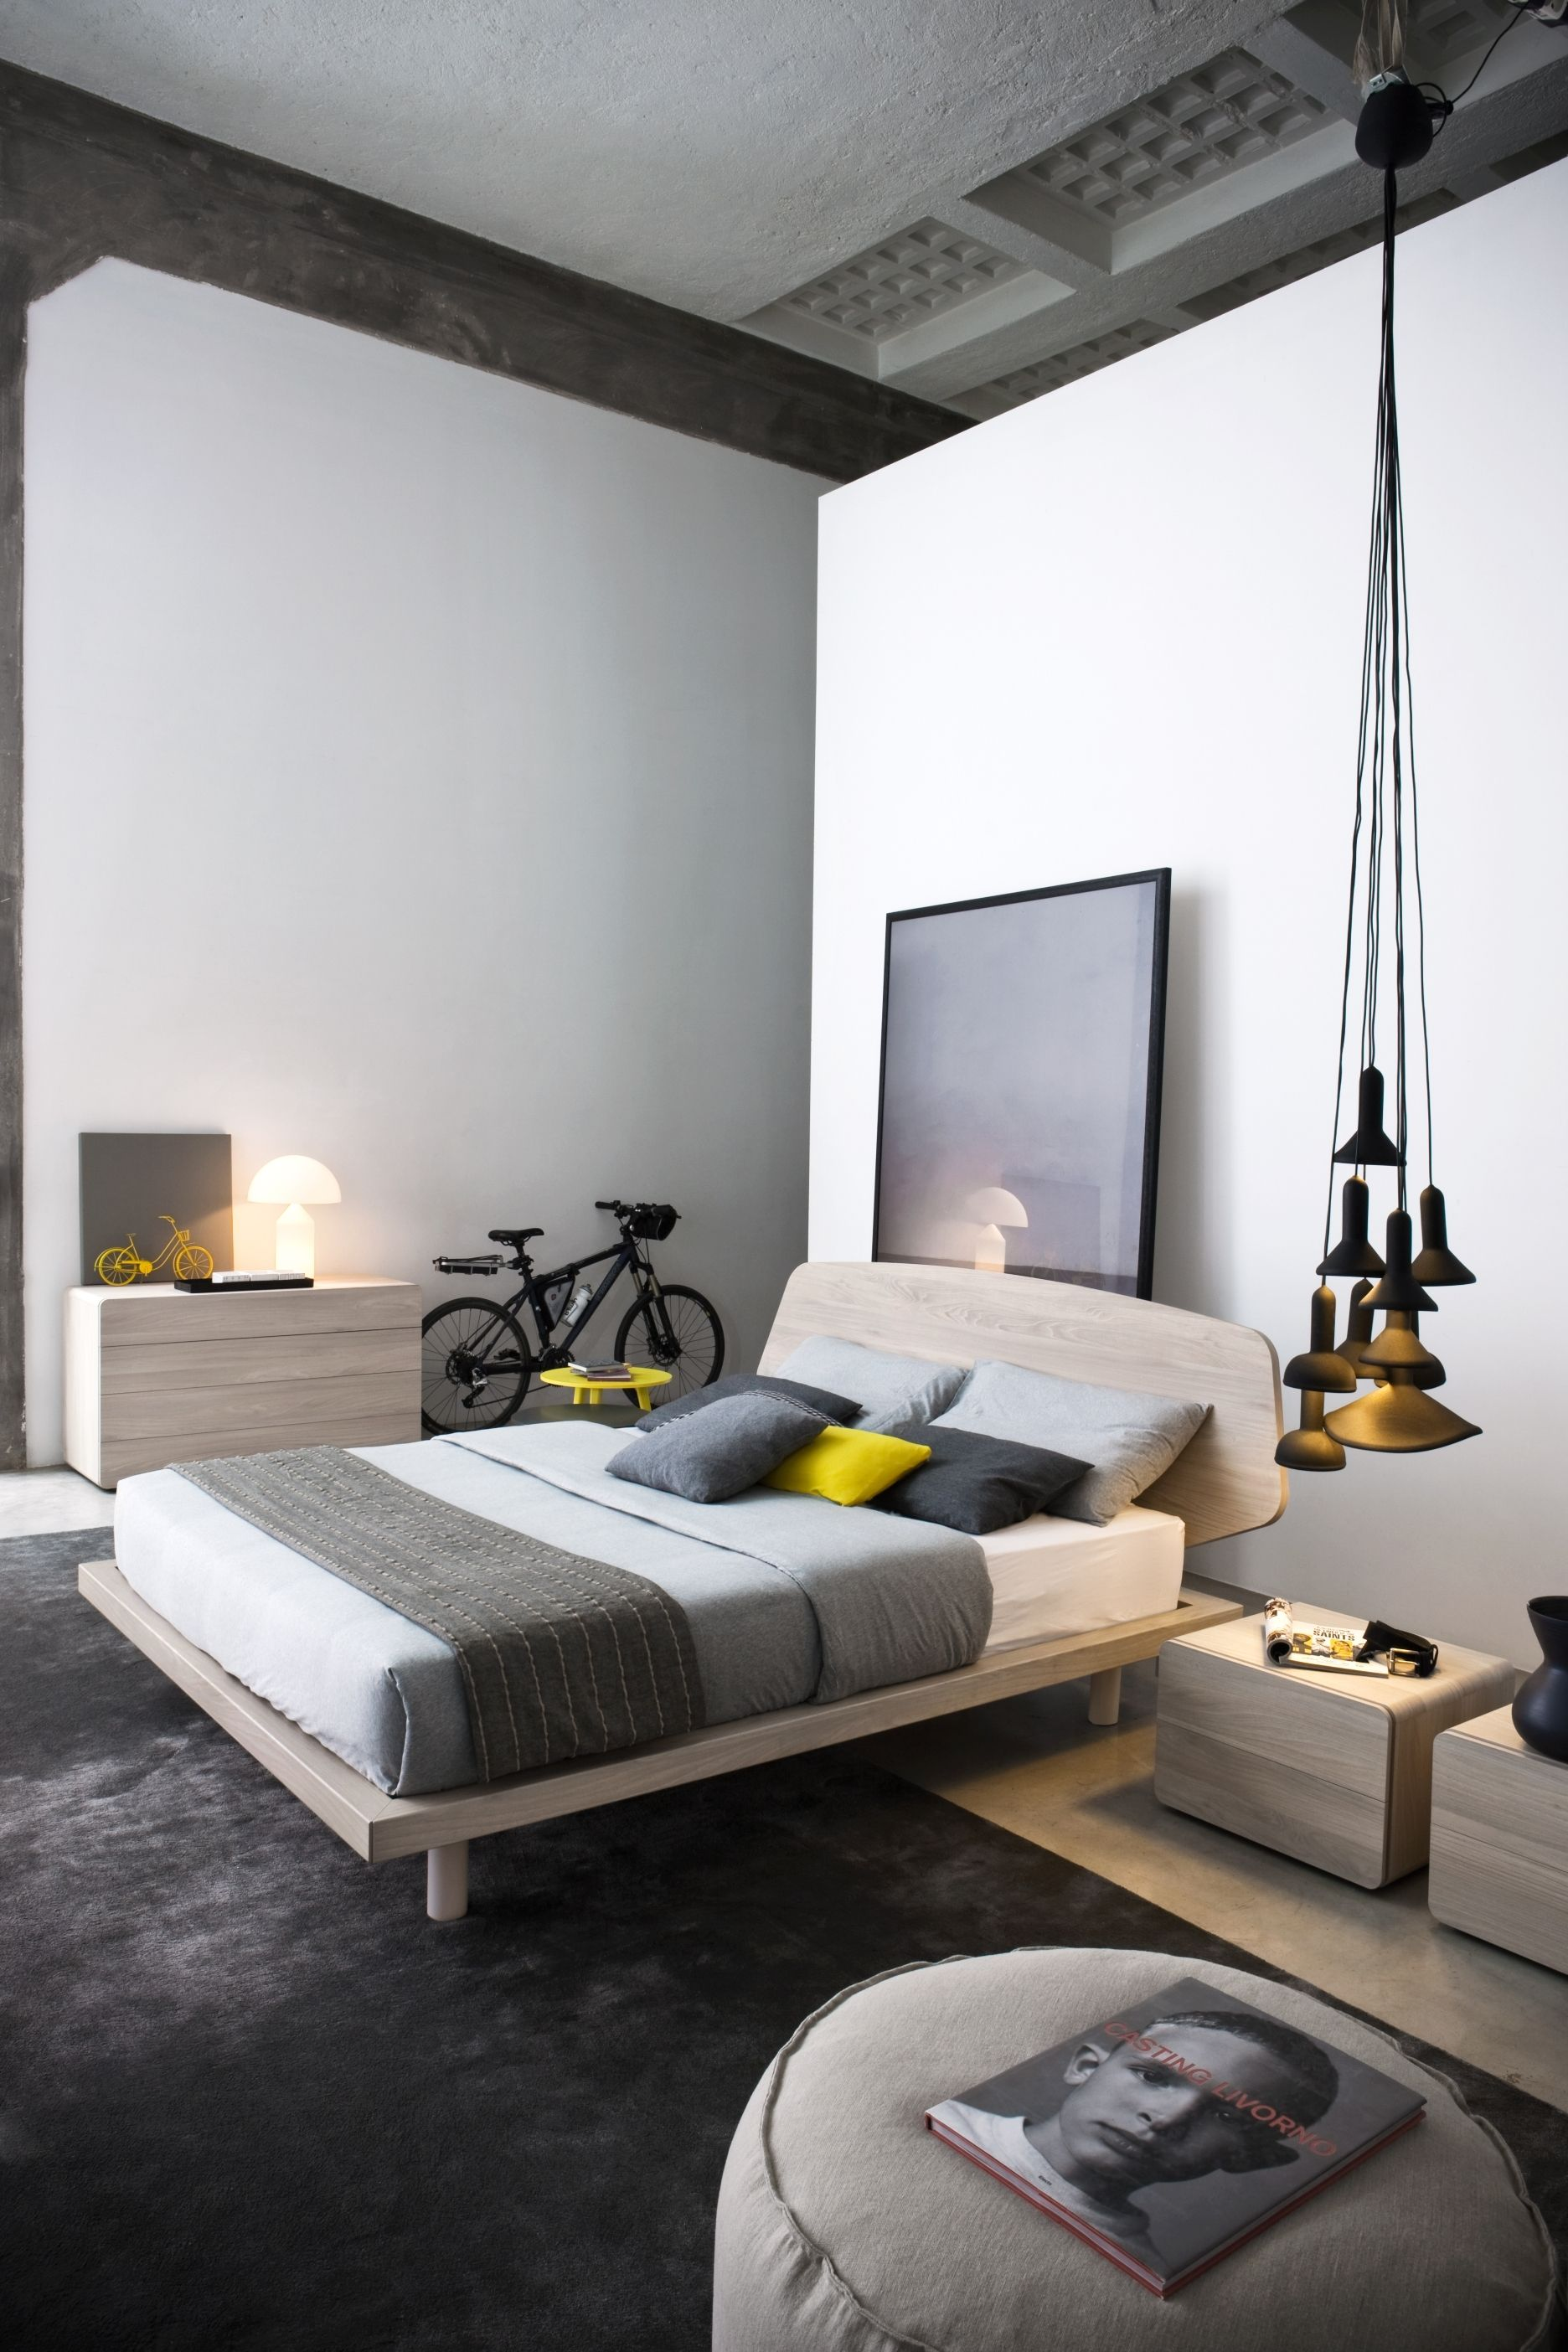 The Diletto Bed And Matching Bedroom Furniture From Novamobili And Their Tempo Modern Bedroom Furniture Living Room Furniture Uk Modern Bedroom Furniture Sets